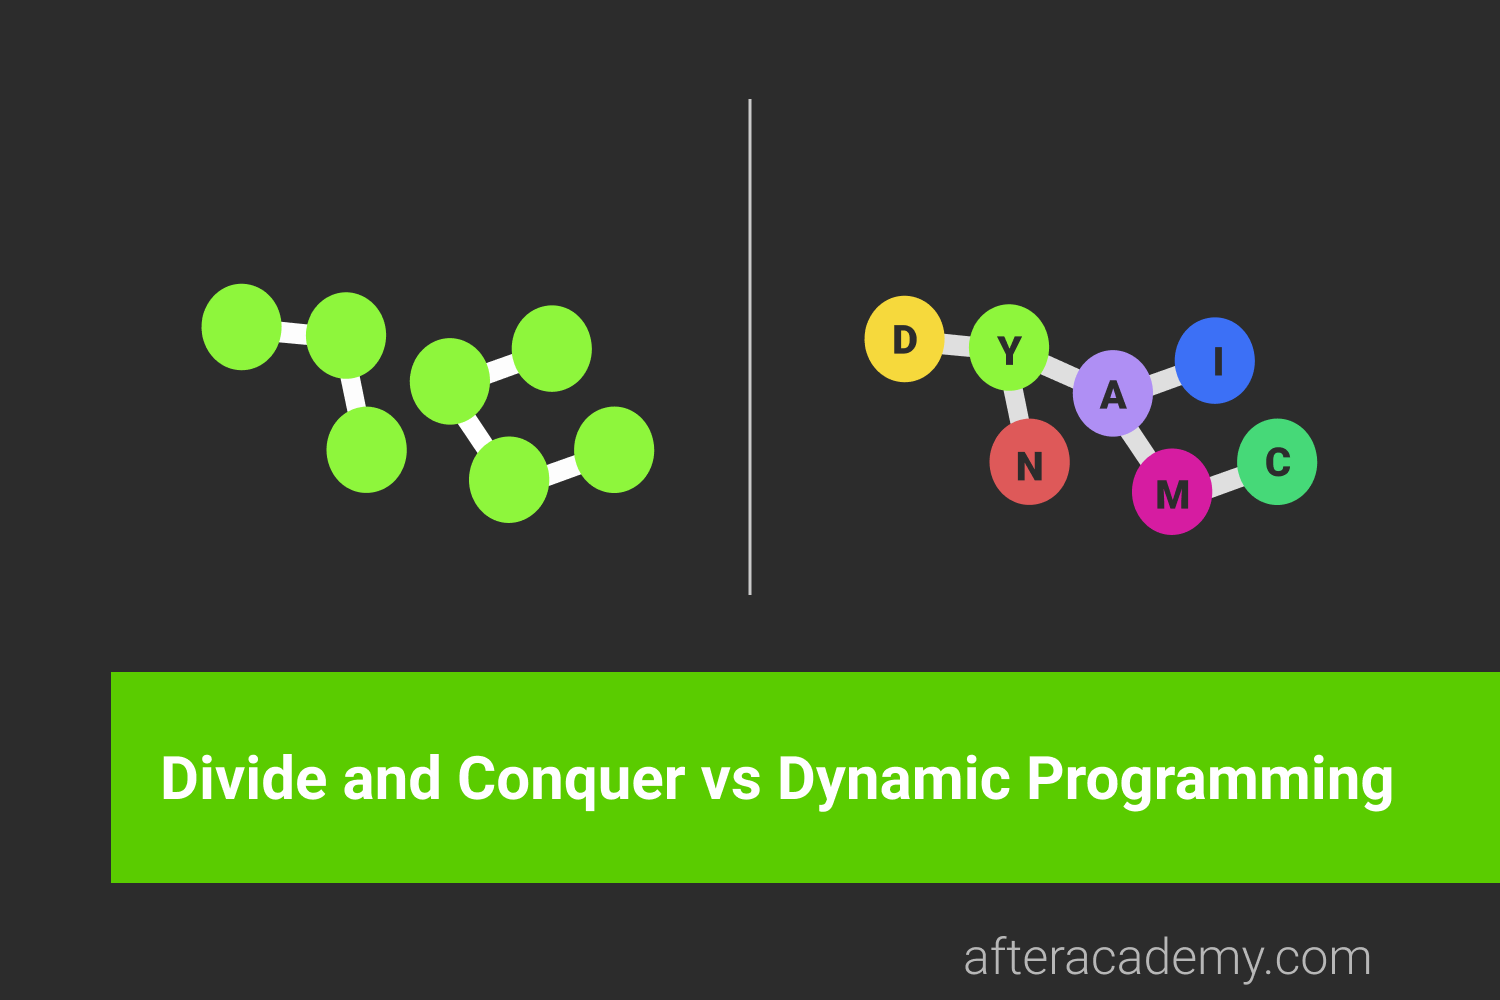 Divide & Conquer vs Dynamic Programming